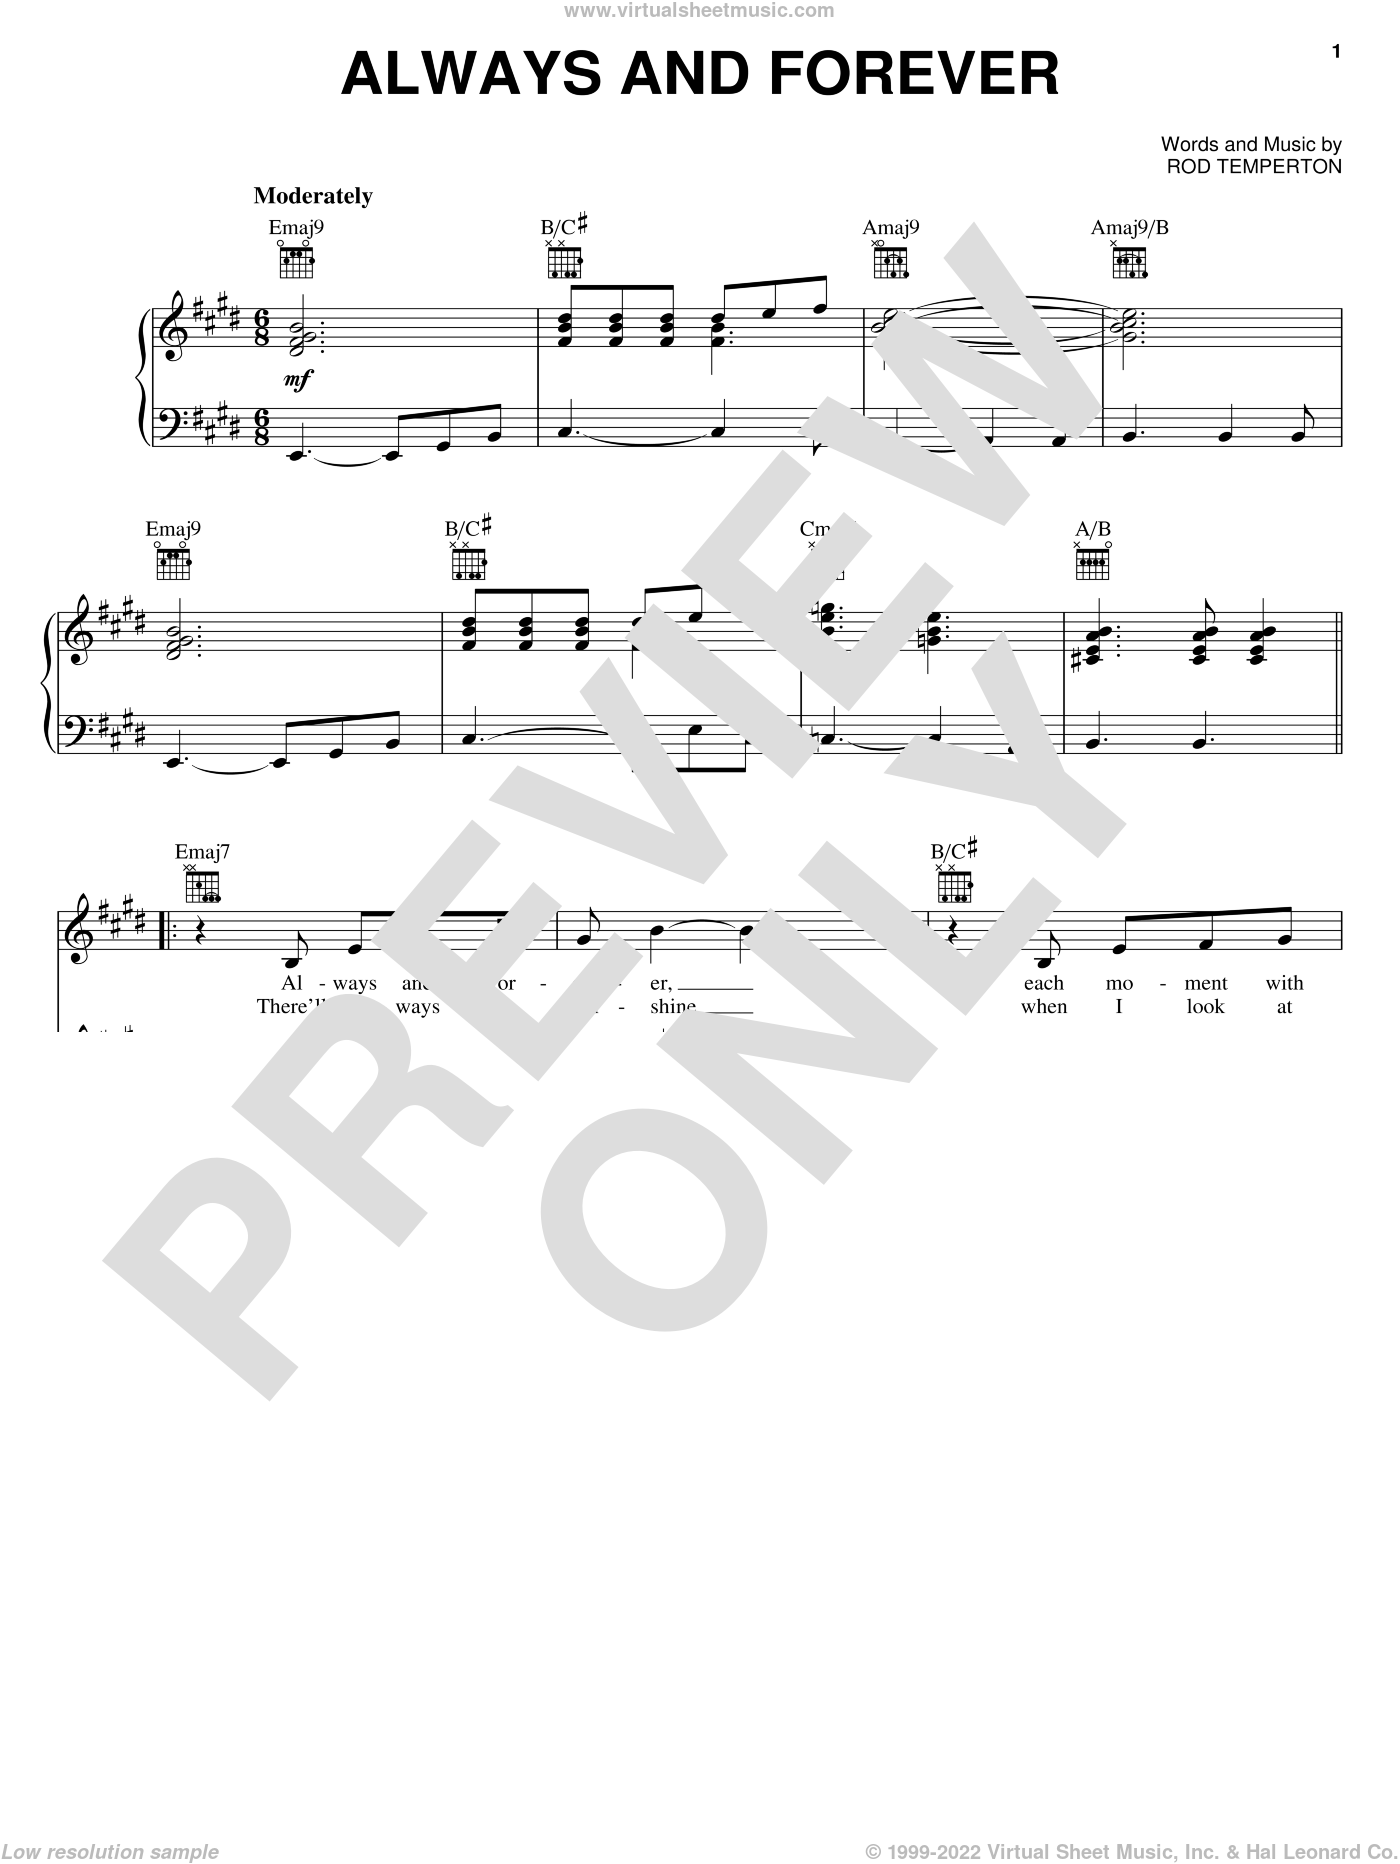 Always And Forever sheet music for voice, piano or guitar by Rod Temperton